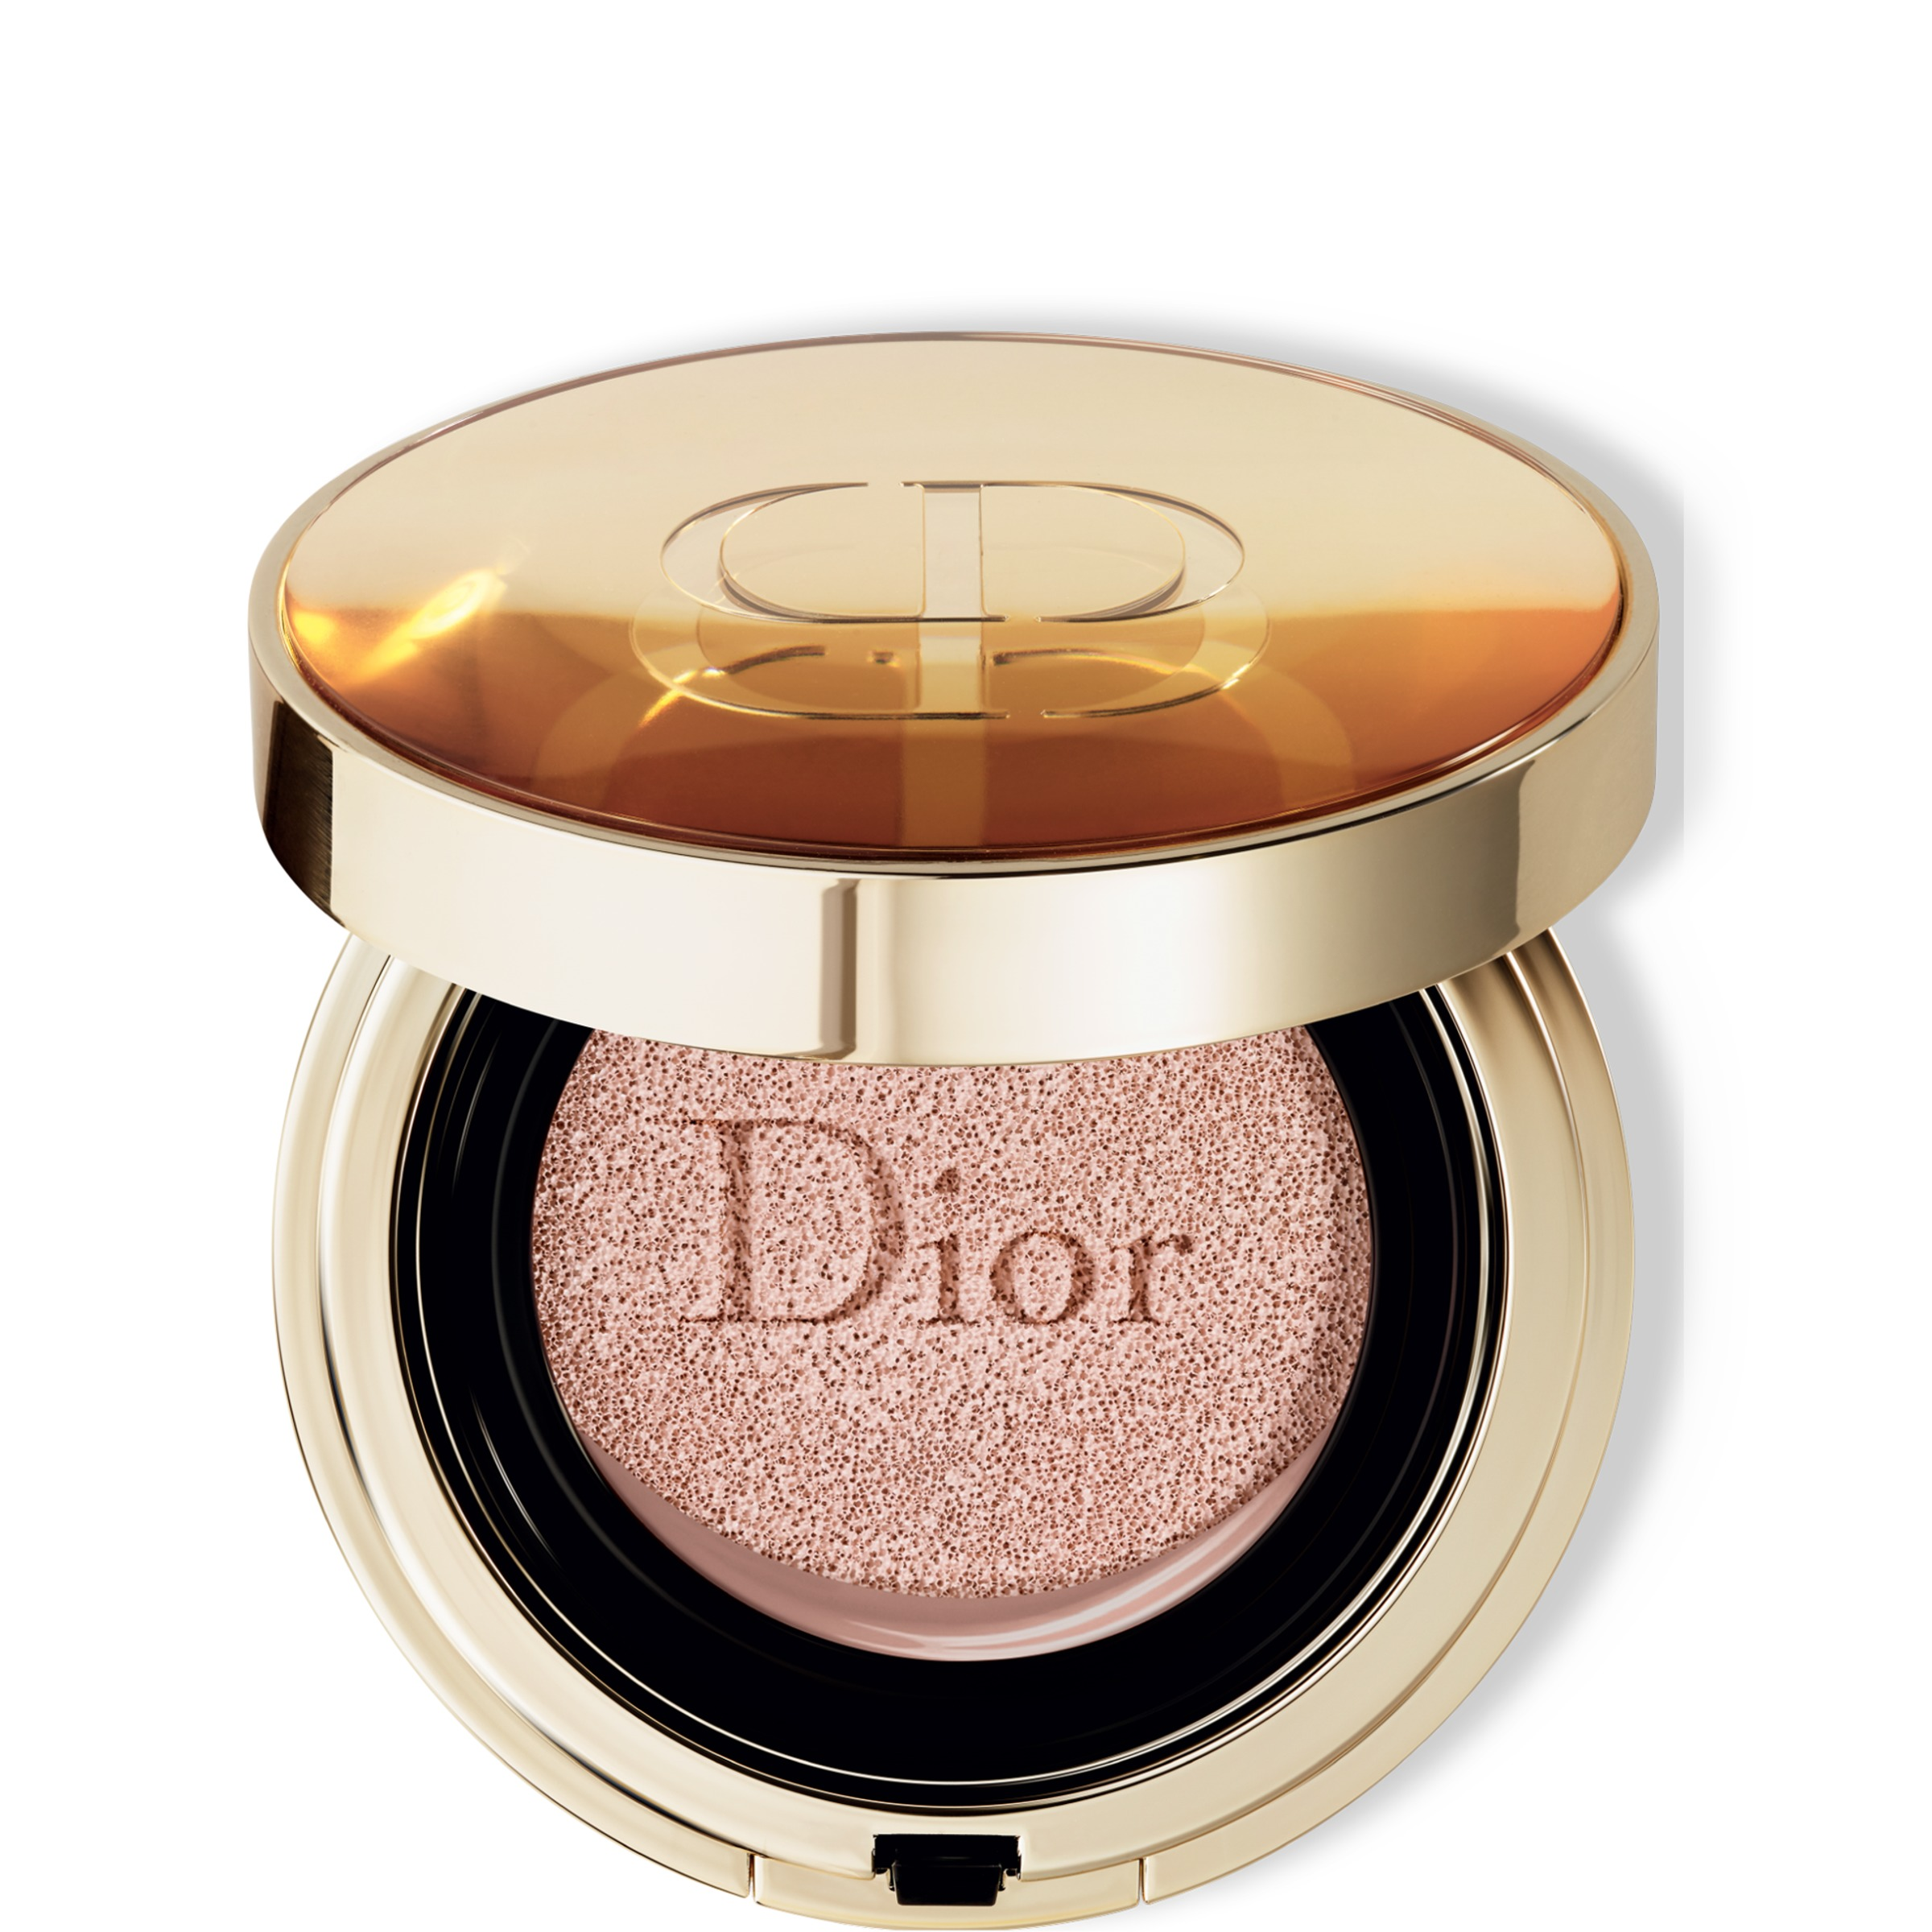 Prestige Le Cushion Teint de Rose Foundation